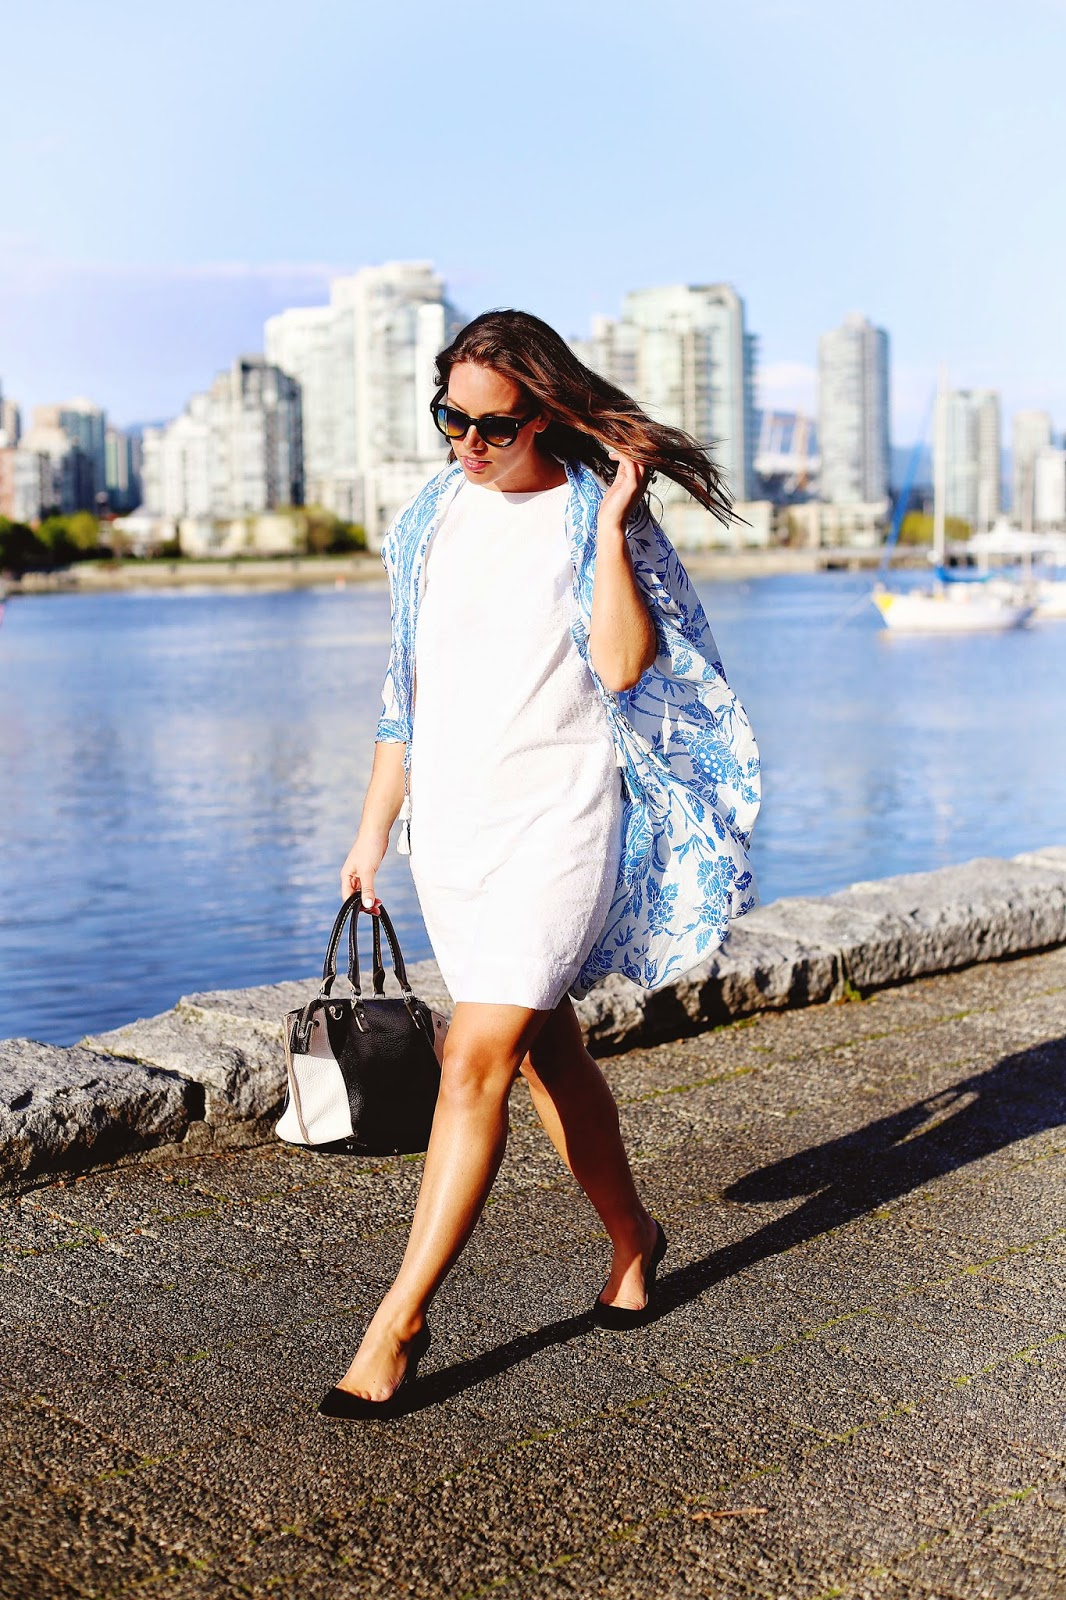 to vogue or bust, vancouver style blog, vancouver fashion blog, vancouver lifestyle blog, vancouver health blog, vancouver fitness blog, vancouver travel blog, canadian fashion blog, canadian style blog, canadian lifestyle blog, canadian health blog, canadian fitness blog, canadian travel blog, alexandra grant, j.crew white dress, aritzia square scarf, aritzia printed scarf, j.crew everly suede pumps, roots leather bag, vintage sunglasses, how to wear a kimono scarf, how to wear a kimono, how to make a kimono out of a scarf, how to style aritzia scarf, how to wear an aritzia scarf, spring trend report, spring trends, how to style a kimono, best fashion blogs, best style blogs, best lifestyle blogs, best health blogs, best fitness blogs, best travel blogs, top fashion blogs, top style blogs, top lifestyle blogs, top health blogs, top fitness blogs, top travel blogs